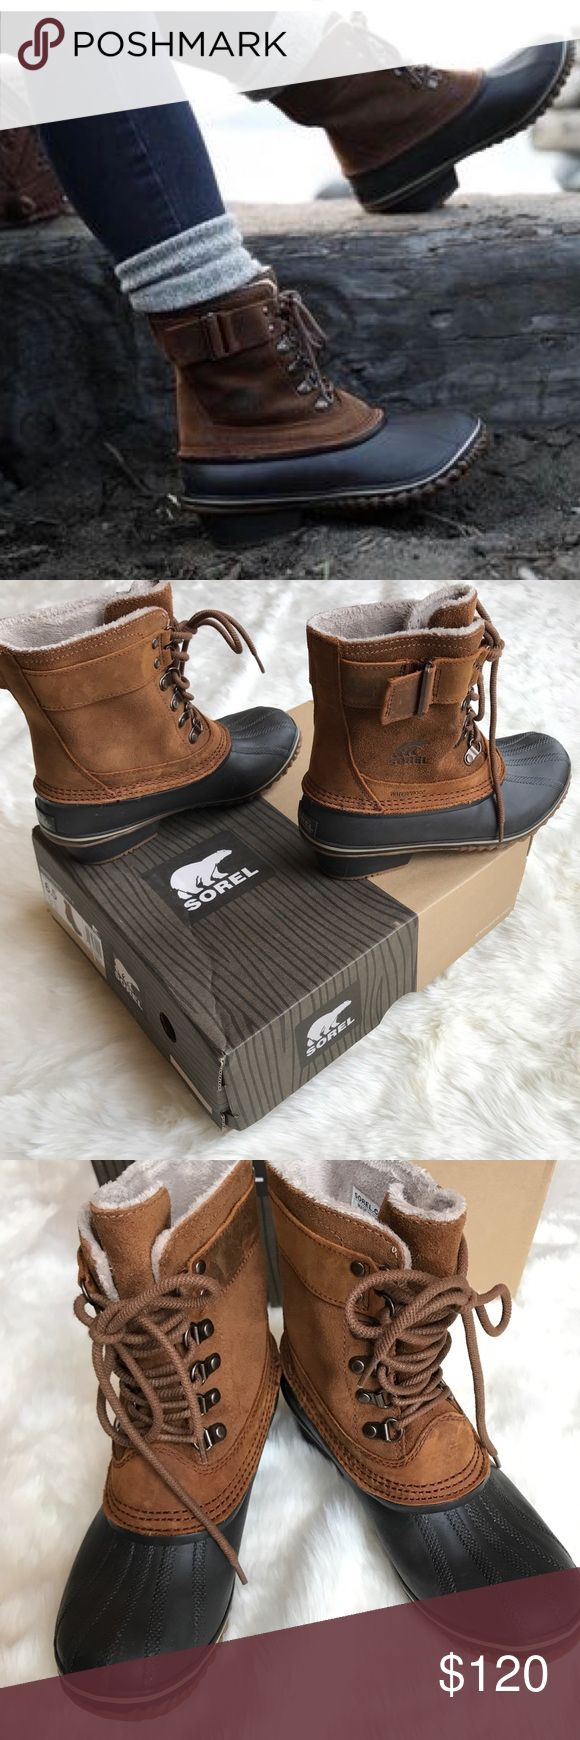 Sorel Winter Fancy Lace II Boot Size 6.5 in the color Elk, Grizzly Bear  Stylish but warm and cozy waterproof Sorel boots. I love how well built they are and the beautiful design but I haven't worn them much living in Texas  Worn once or twice and comes with original box Sorel Shoes Winter & Rain Boots